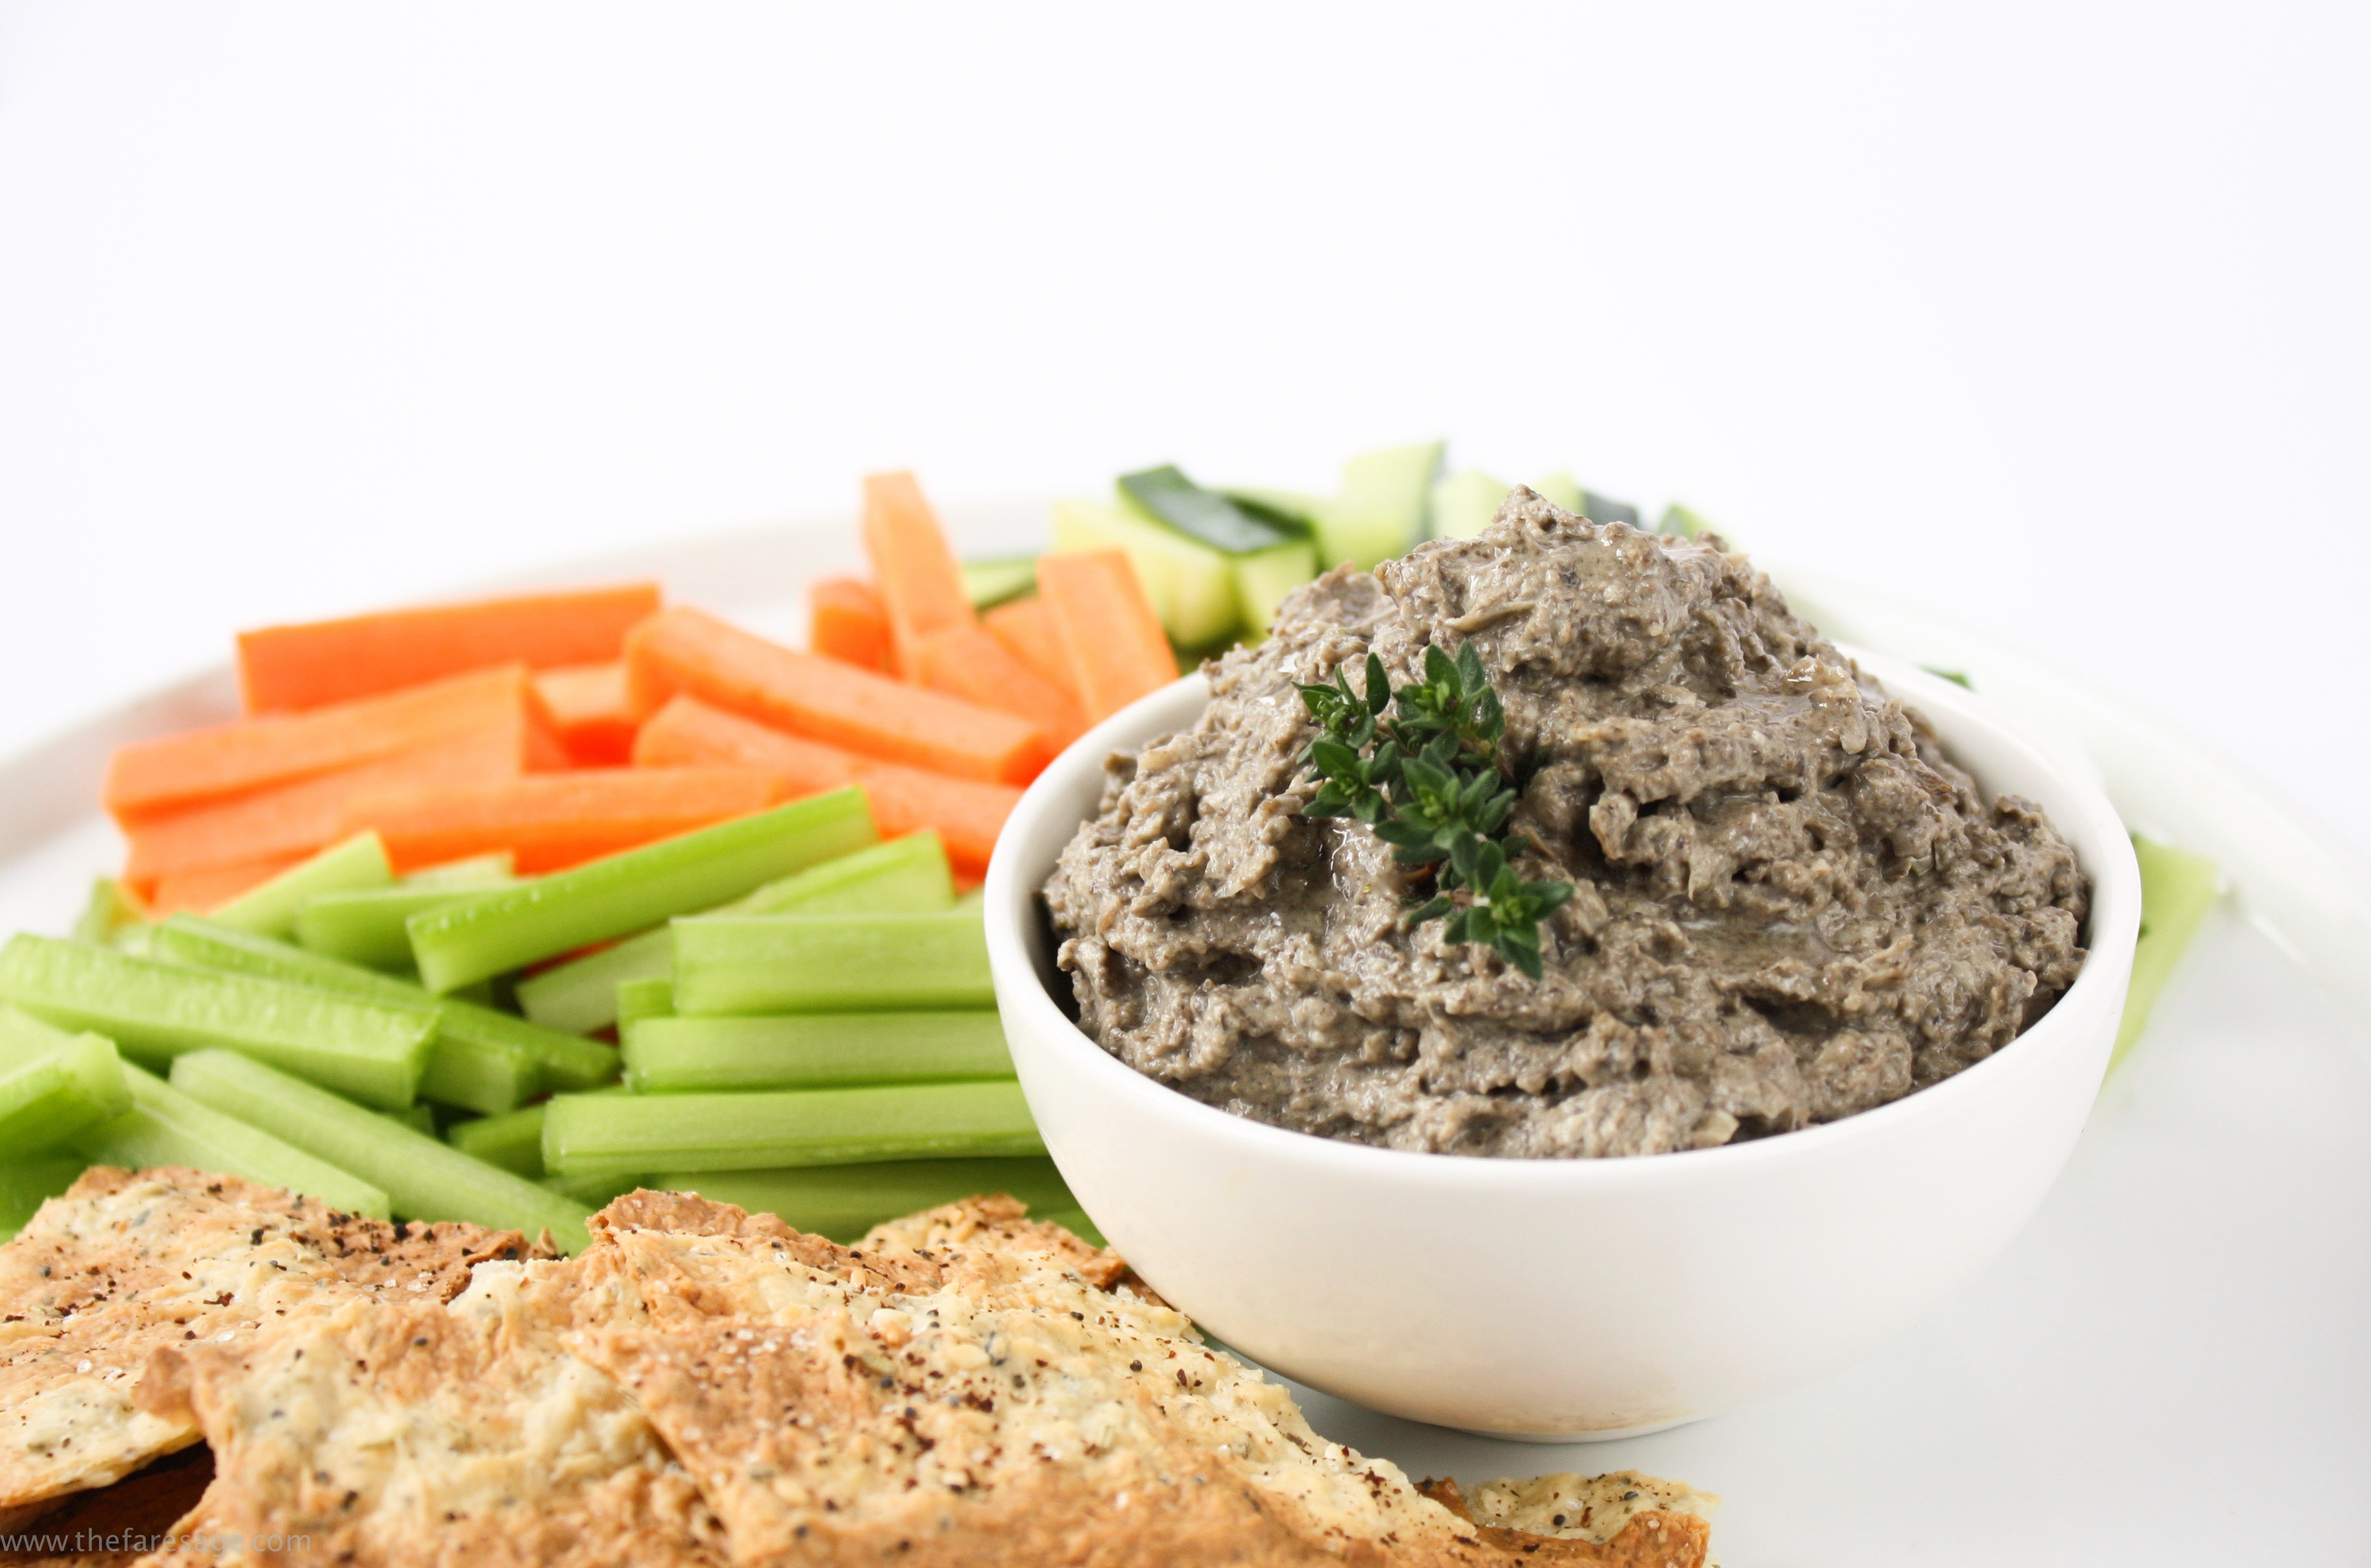 Mushroom pate with thyme and garlic